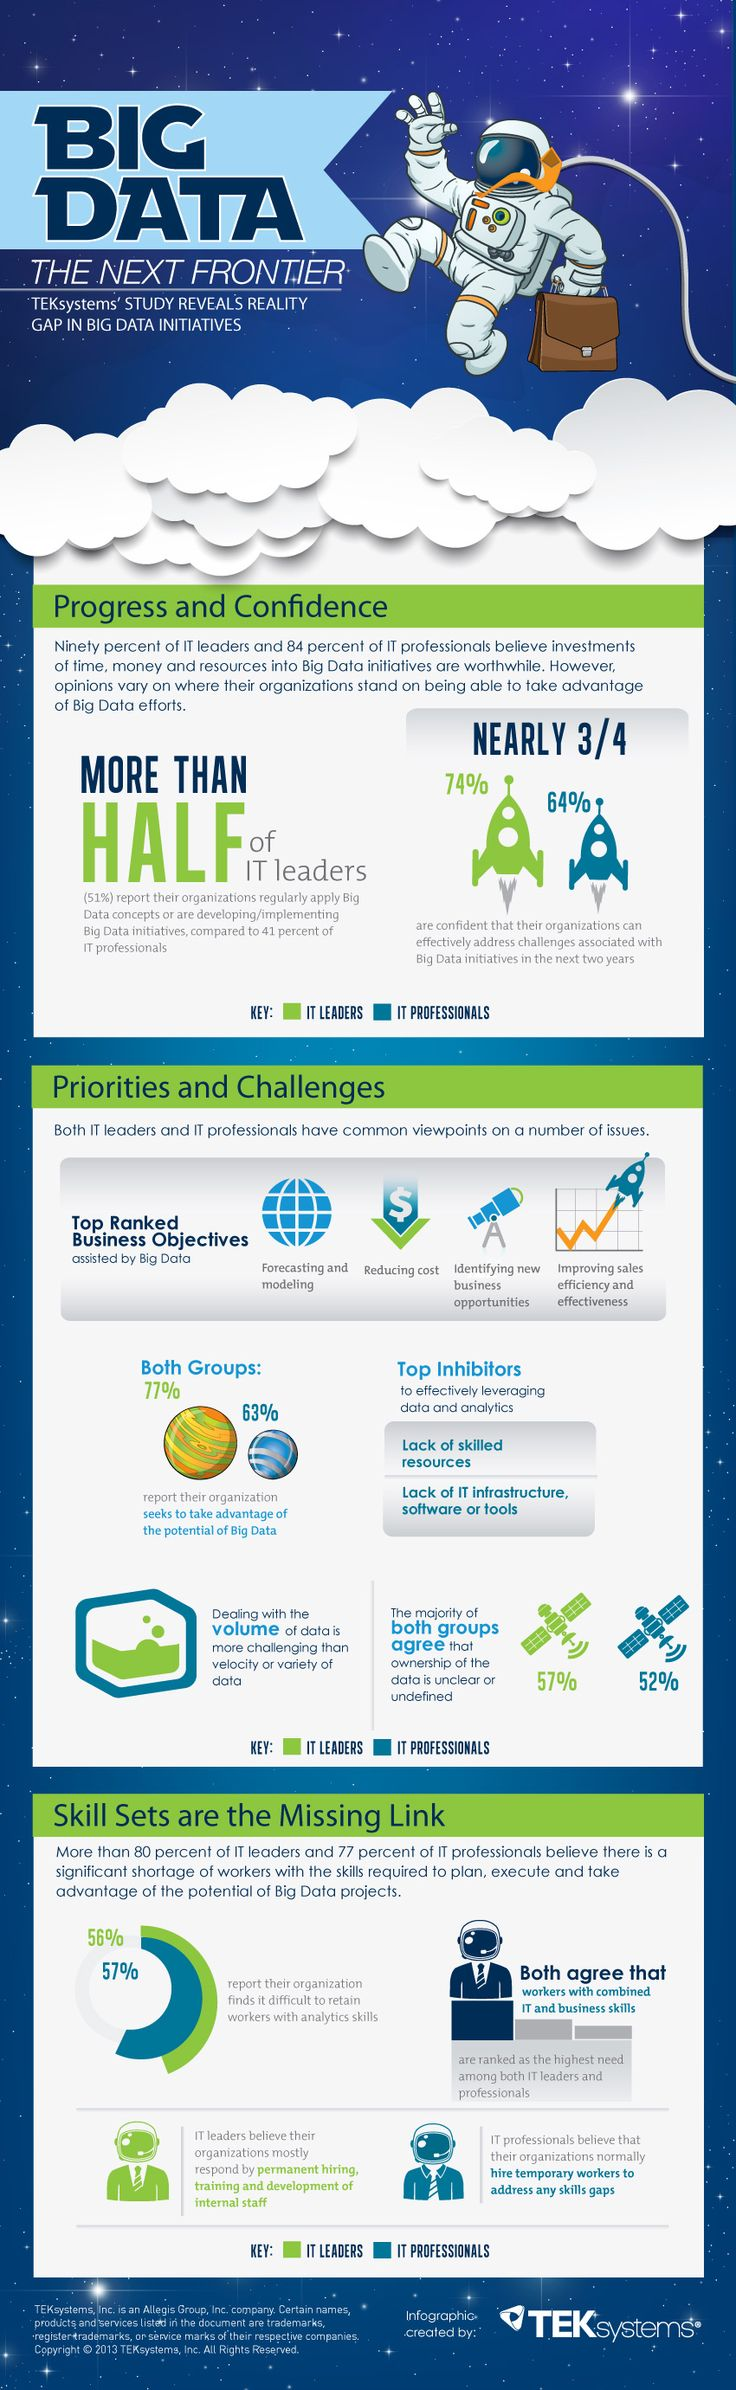 Big Data: The Next Frontier #Infographic #BigData #Infographic